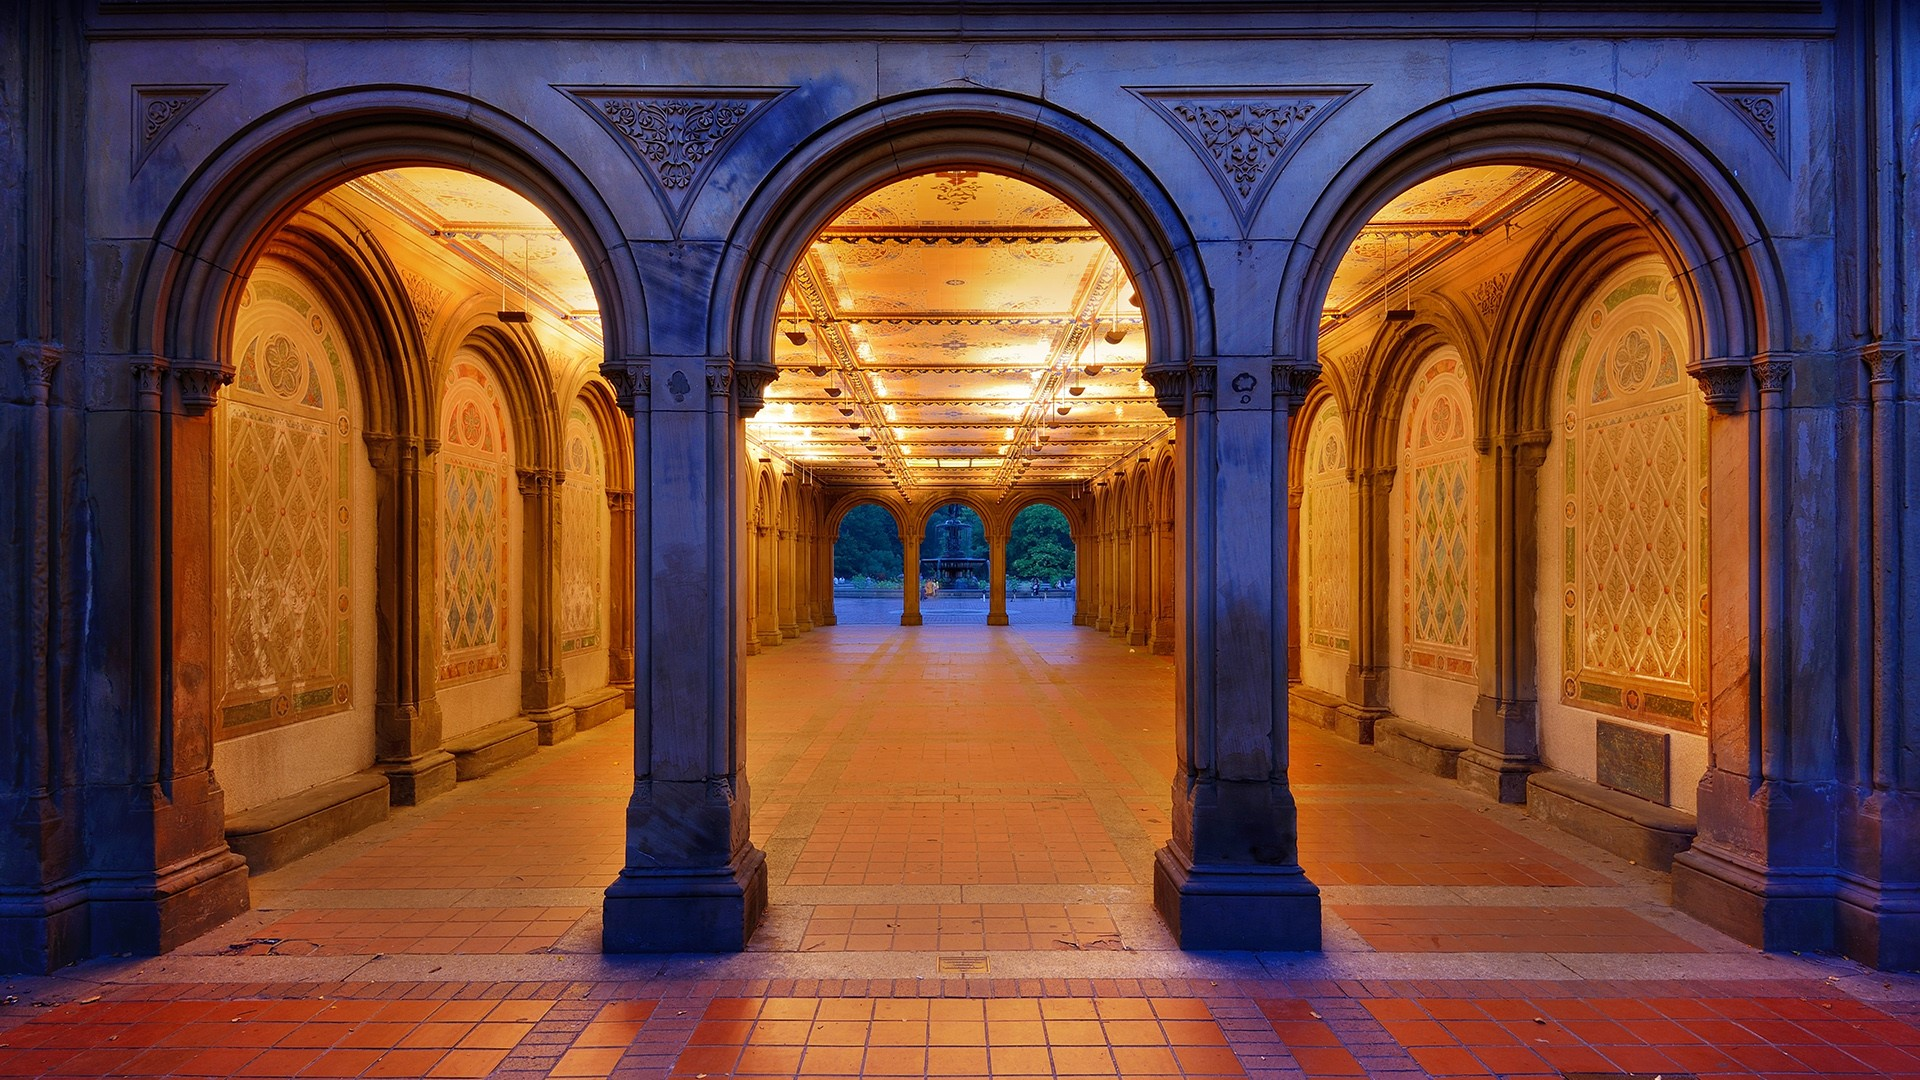 Bethesda terrace underpass central park manhattan new for 10 river terrace nyc